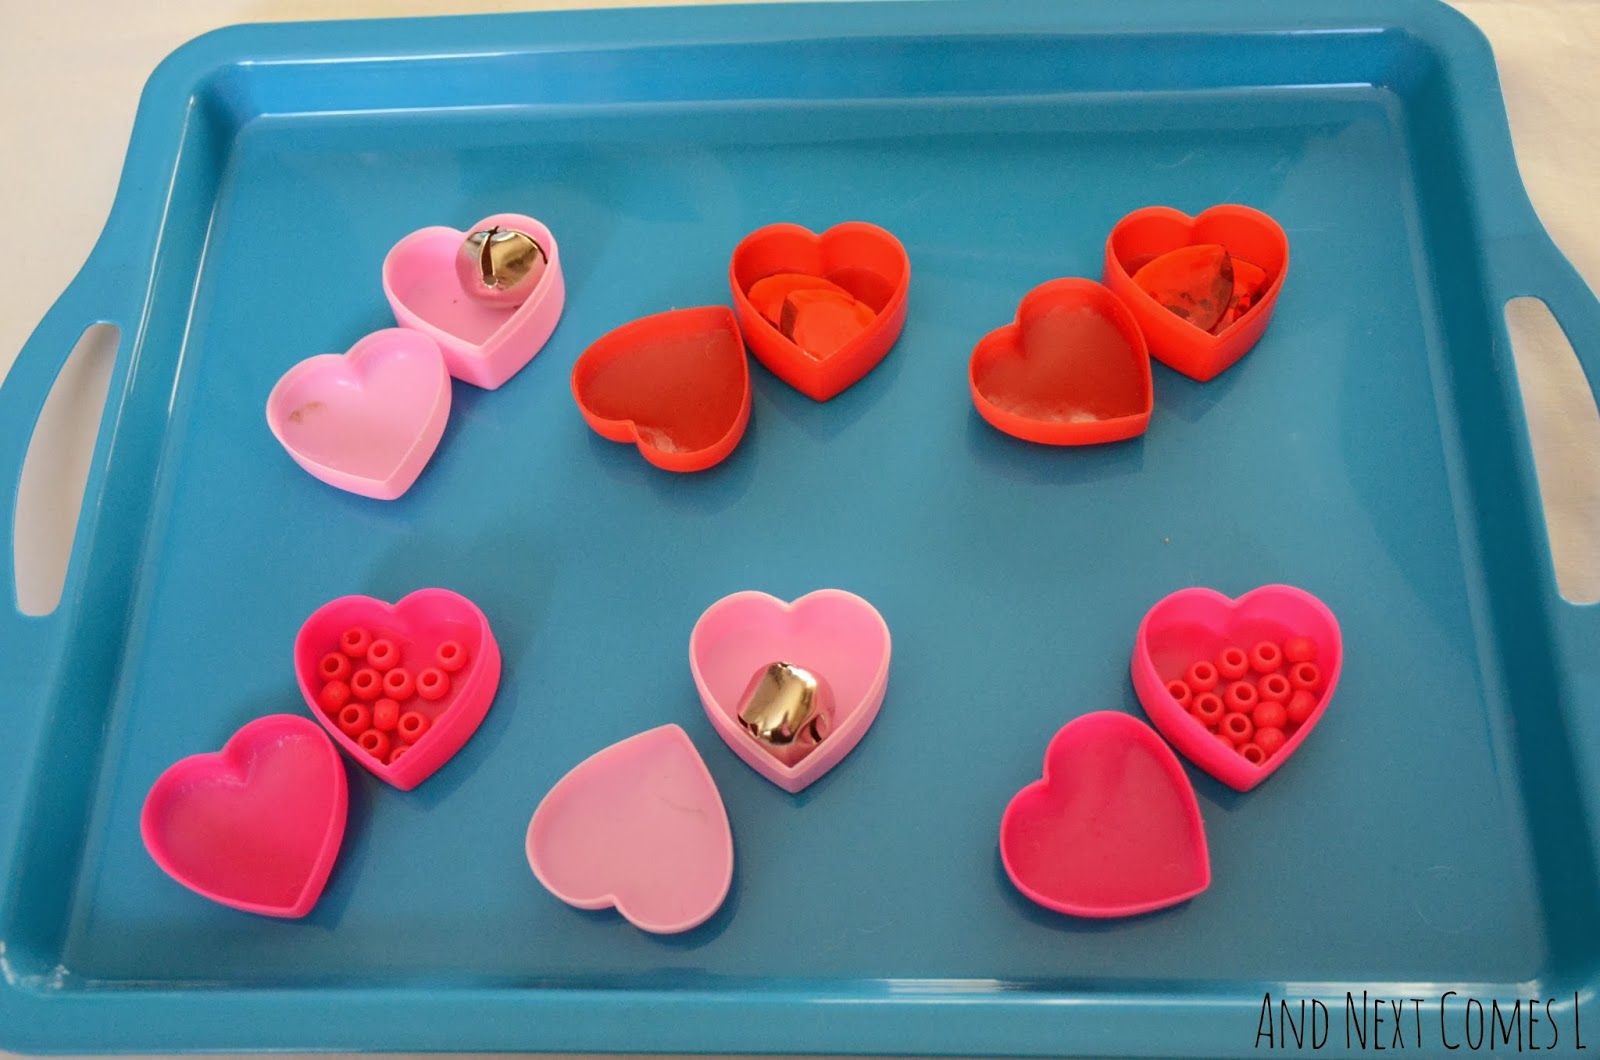 Inside of the Montessori inspired sound matching hearts for Valentine's Day from And Next Comes L